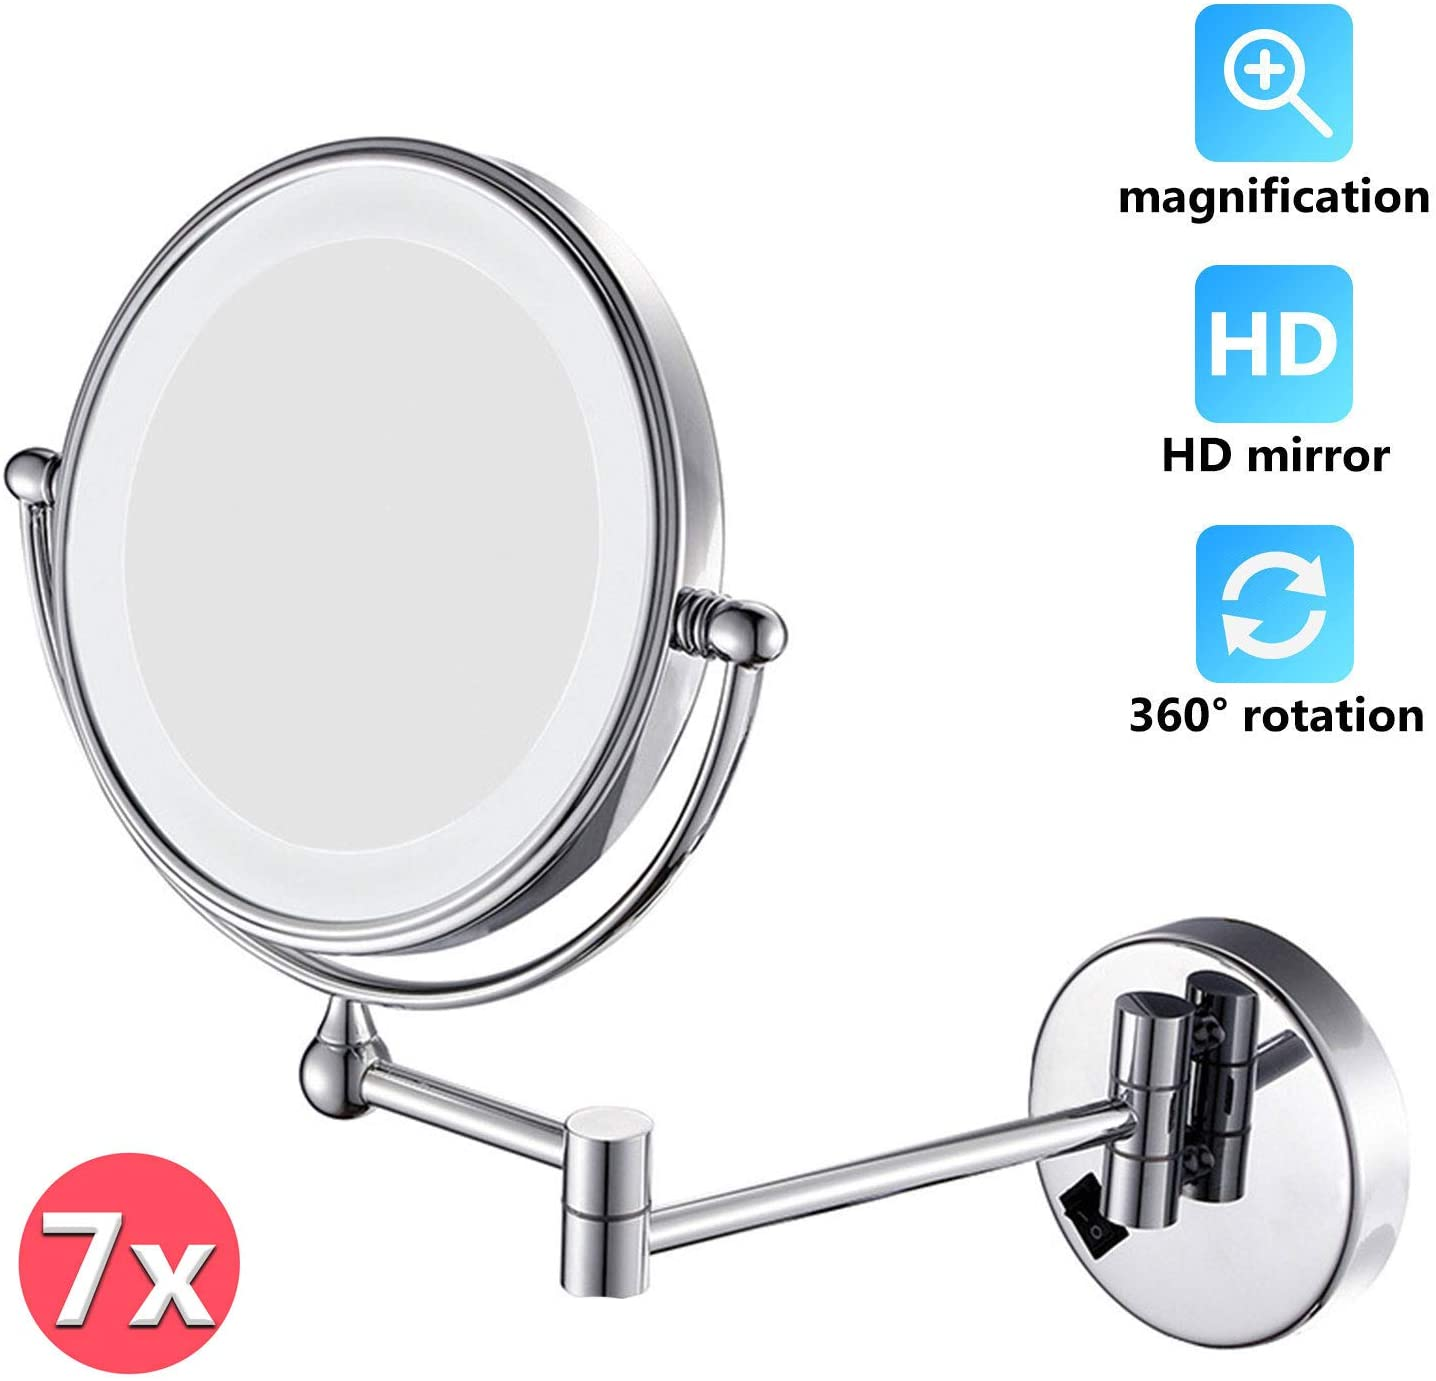 LFSTY Makeup Mirror Wall Mount Magnification Lighted 7X, Double Face 360 Swivel Cosmetic Extendable Vanity Mirrors for Bathroom Home Hotels,USB Charging